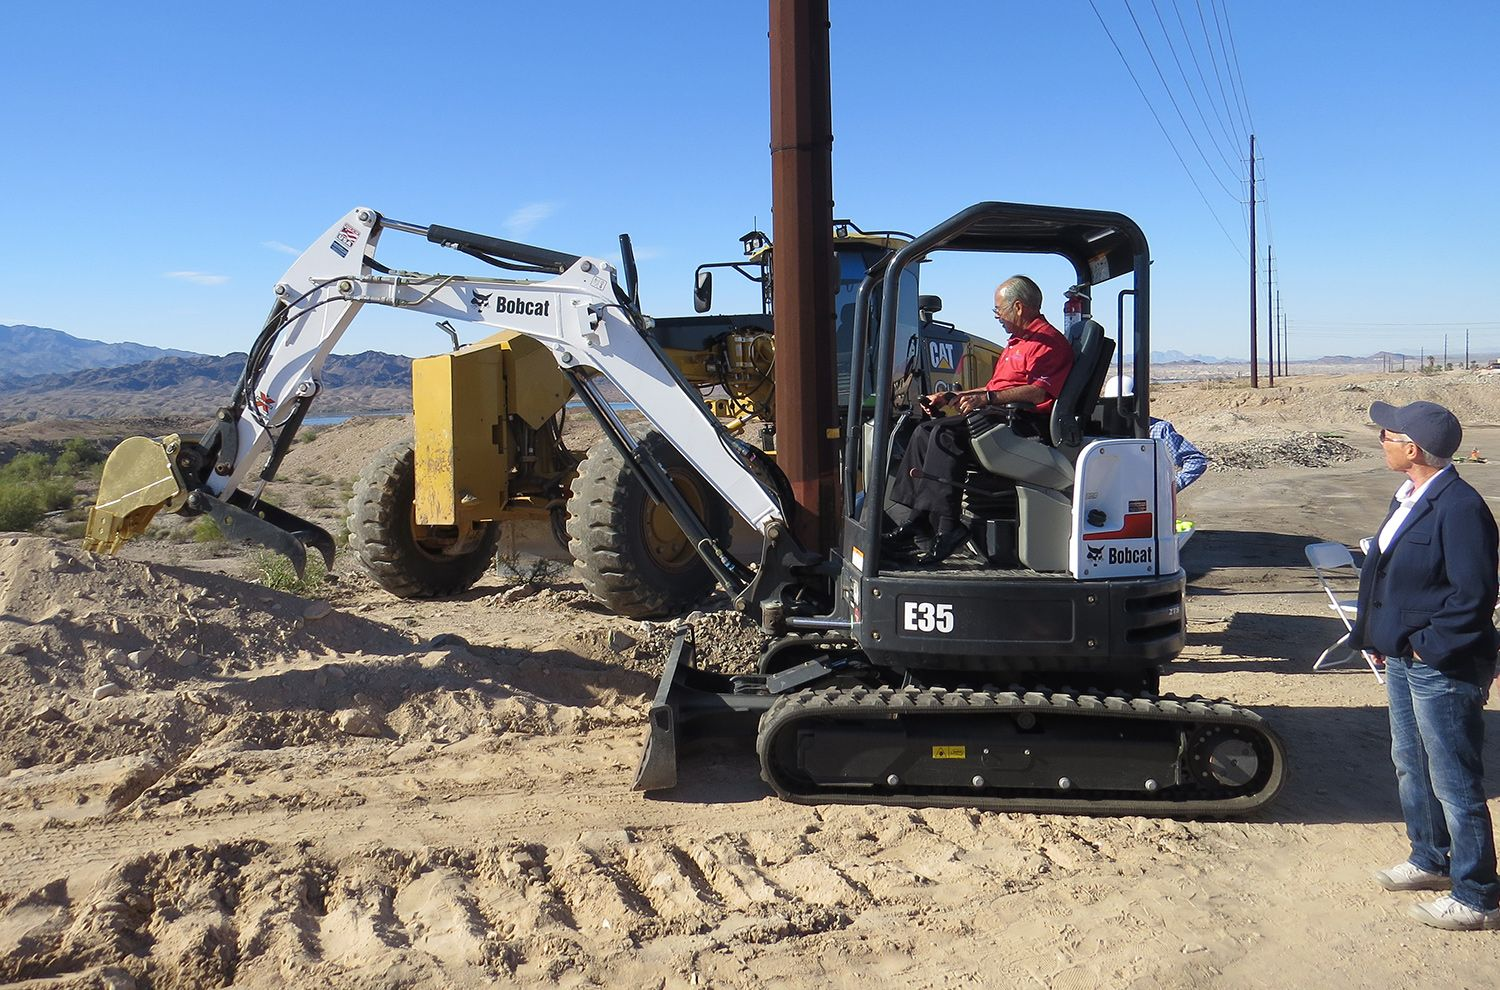 Havasu riviera and contact point state park groundbreaking